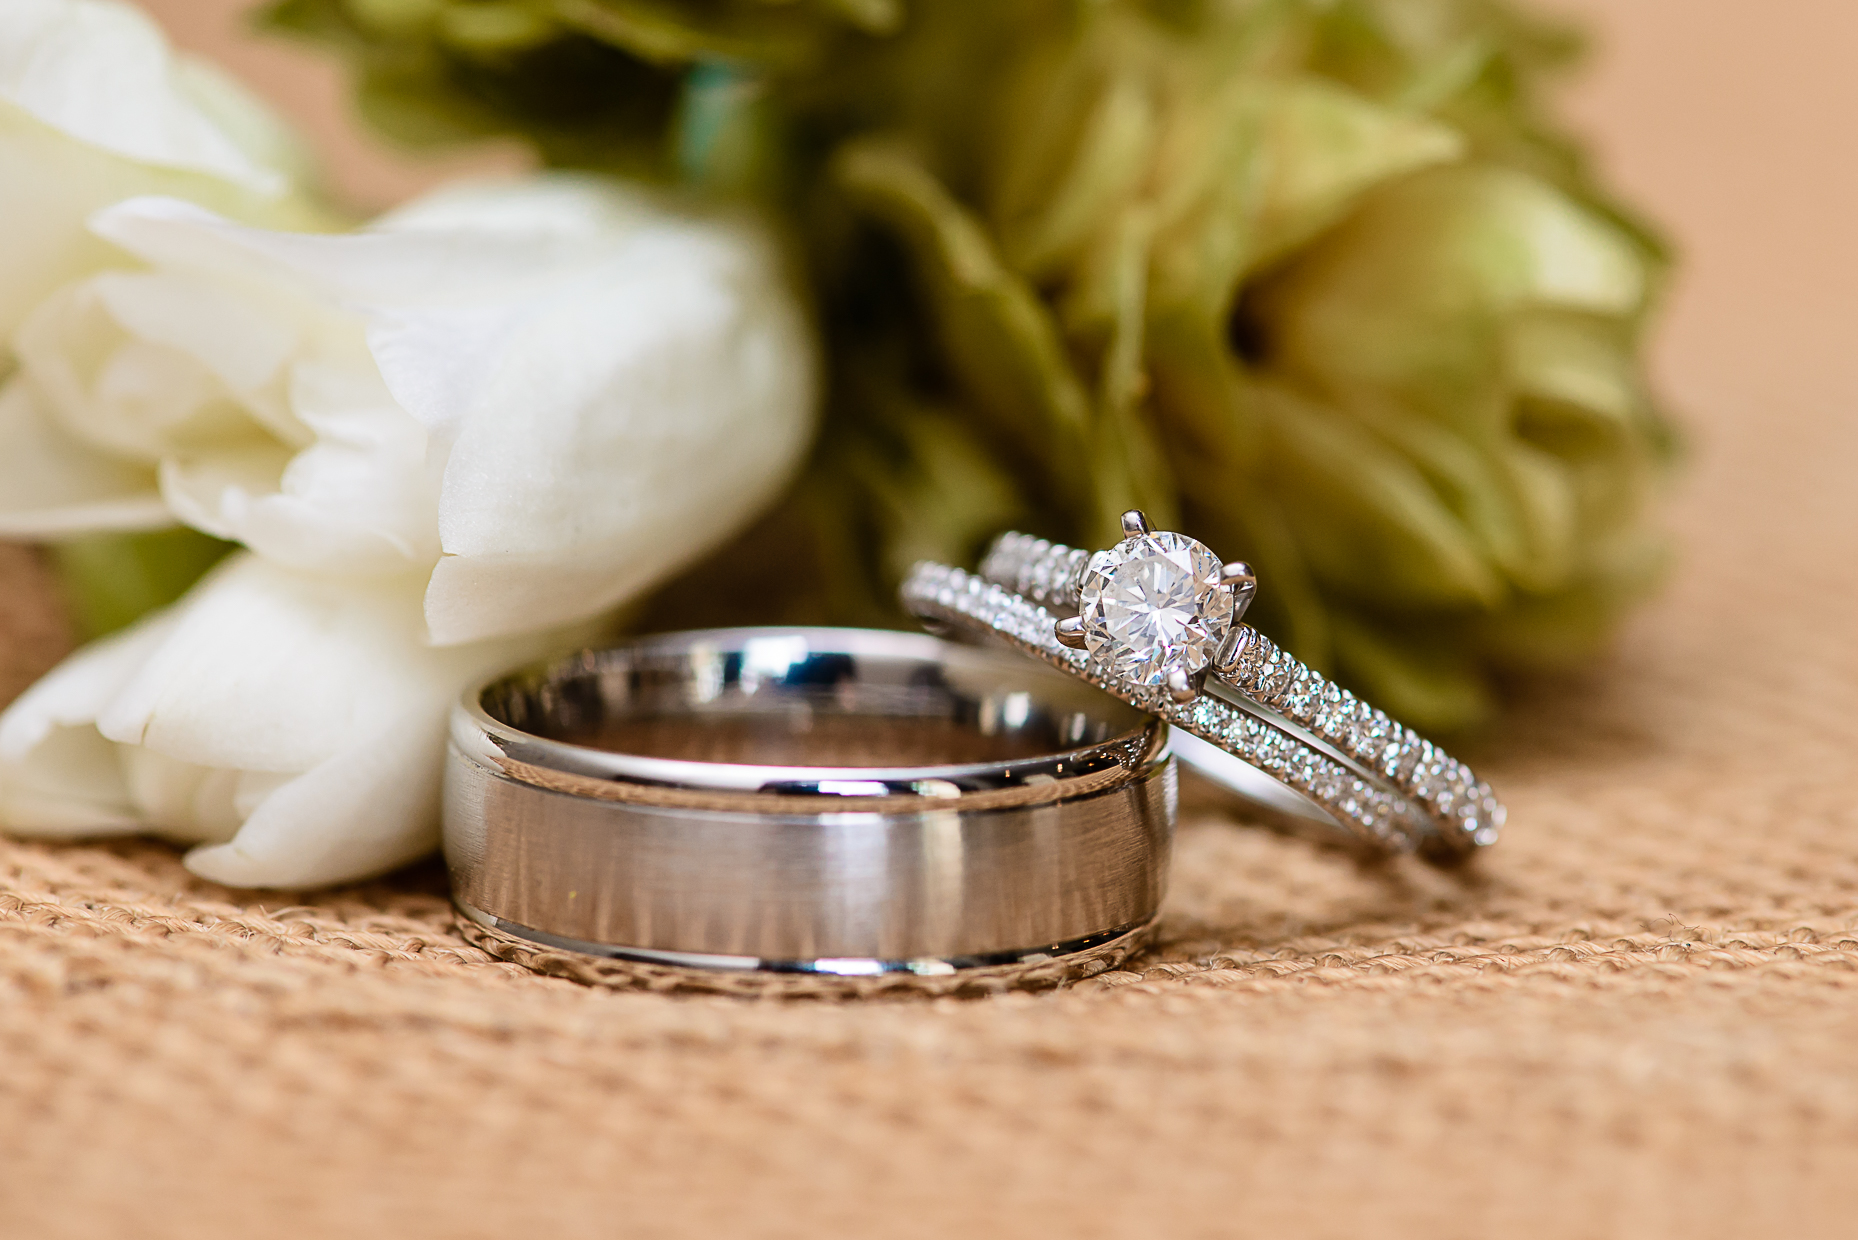 beer-hops-wedding-ring-diamond-austin-photographers-ma-maison